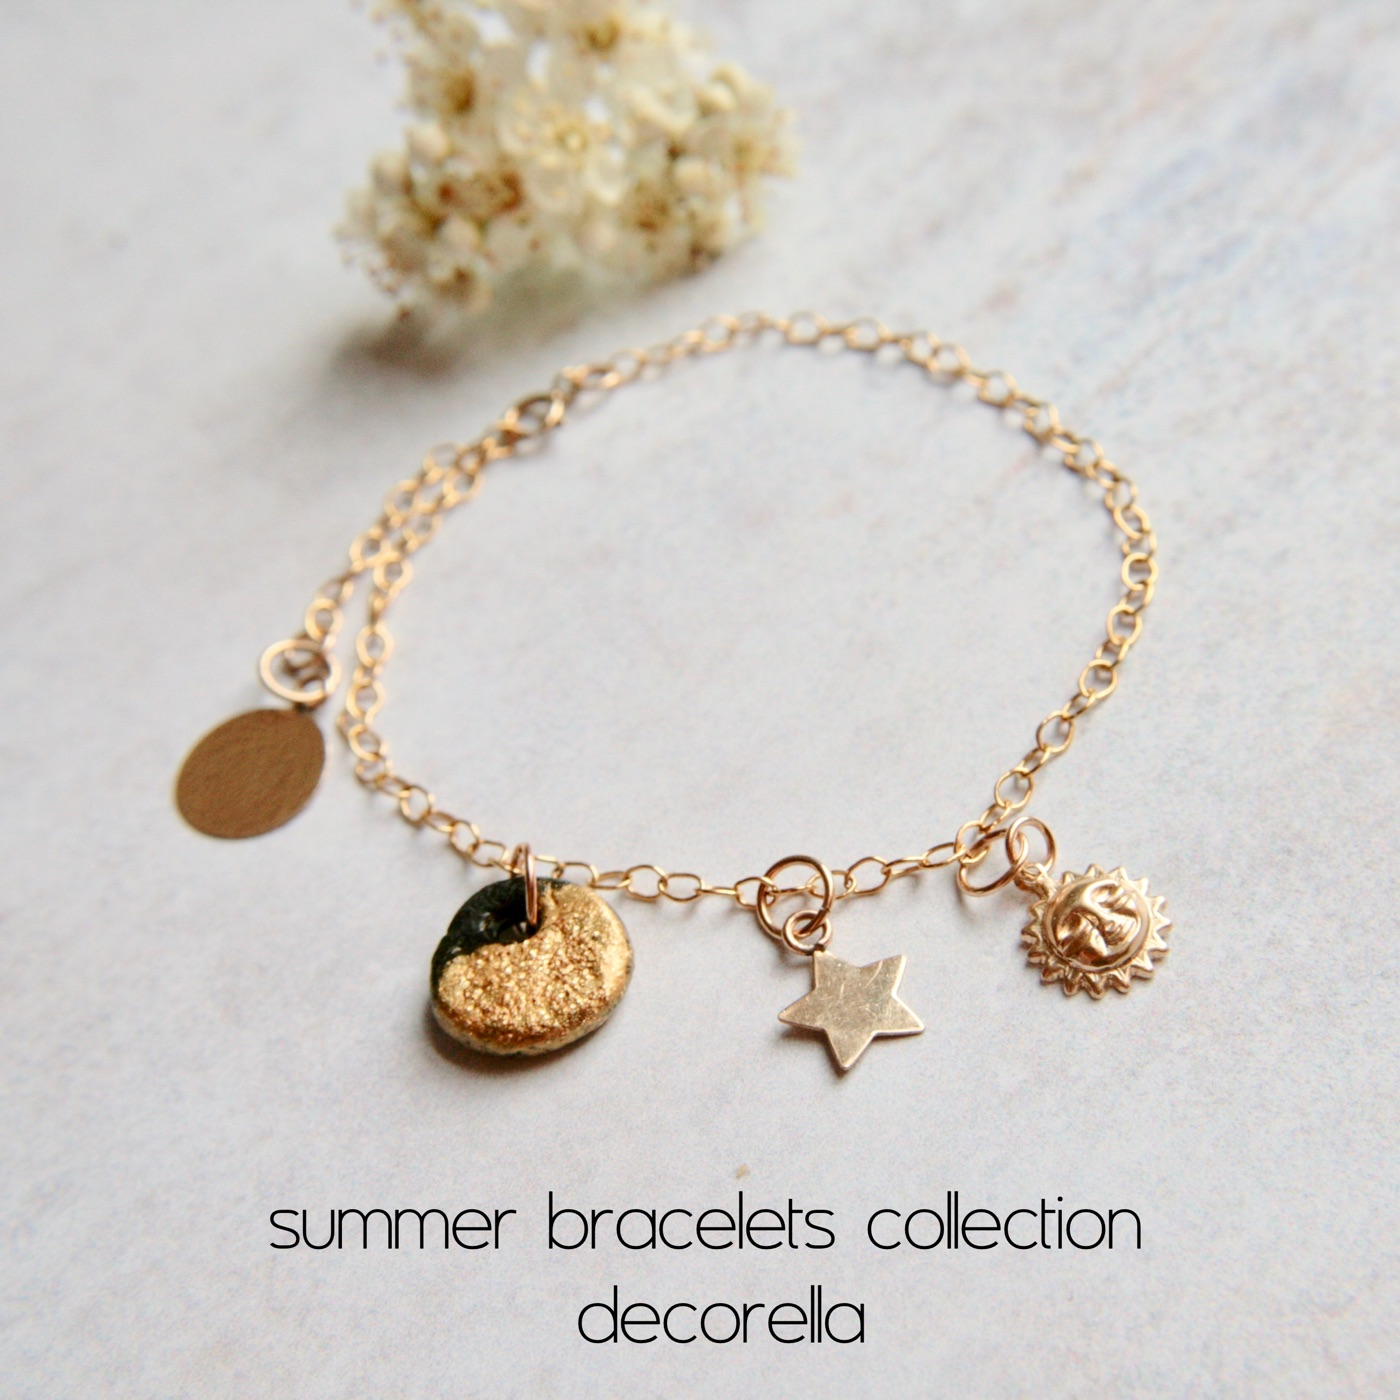 gold bracelet with sun charm